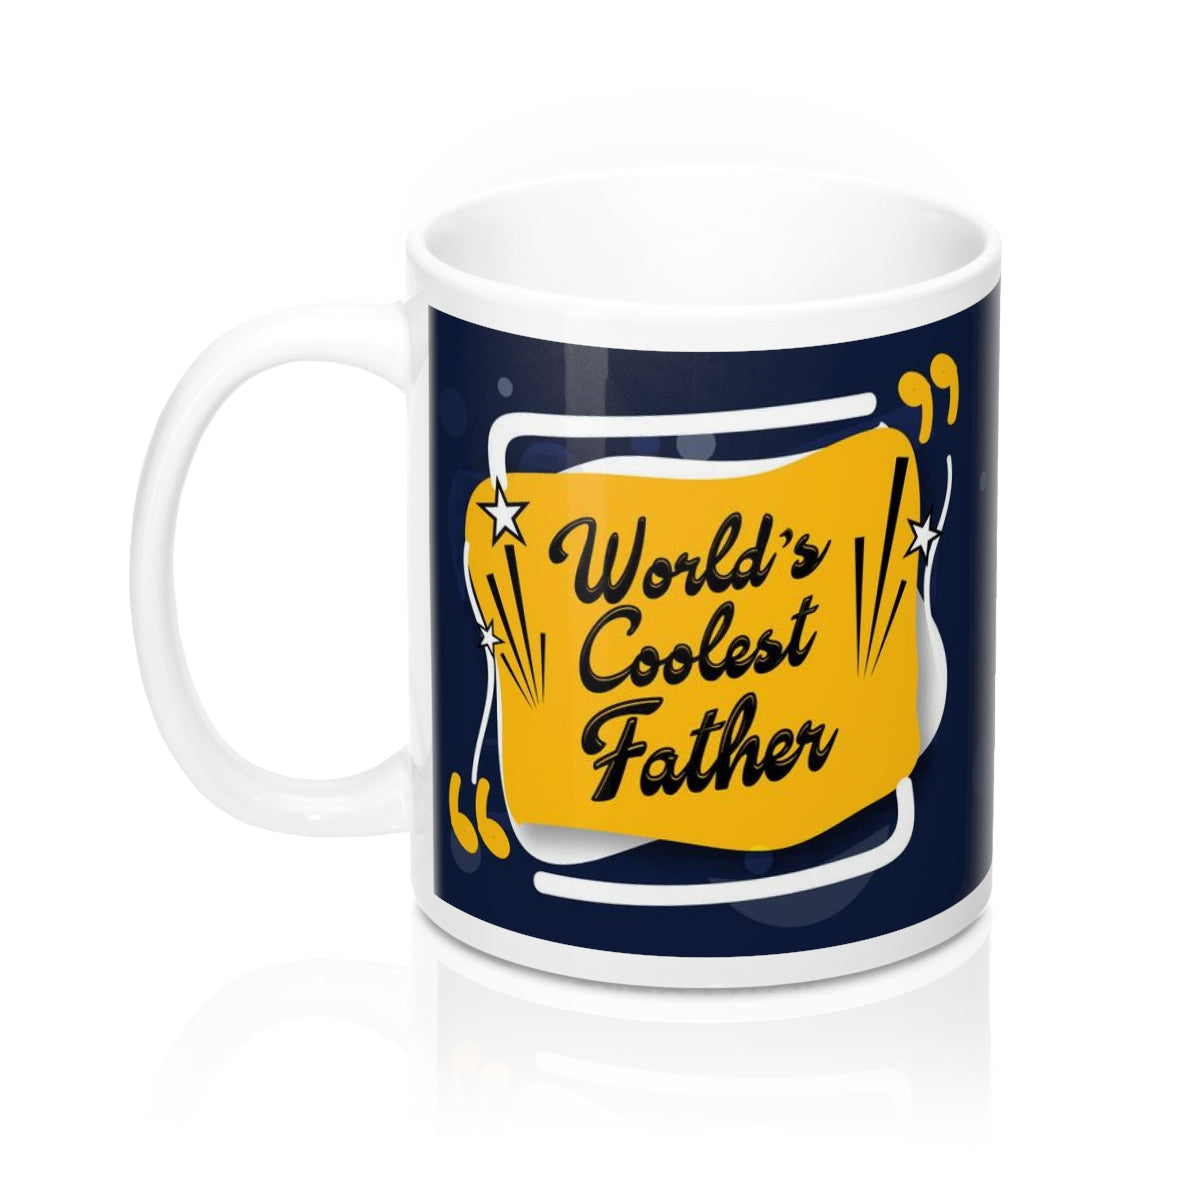 Distinct Interior Coolest Father Mug With Photo